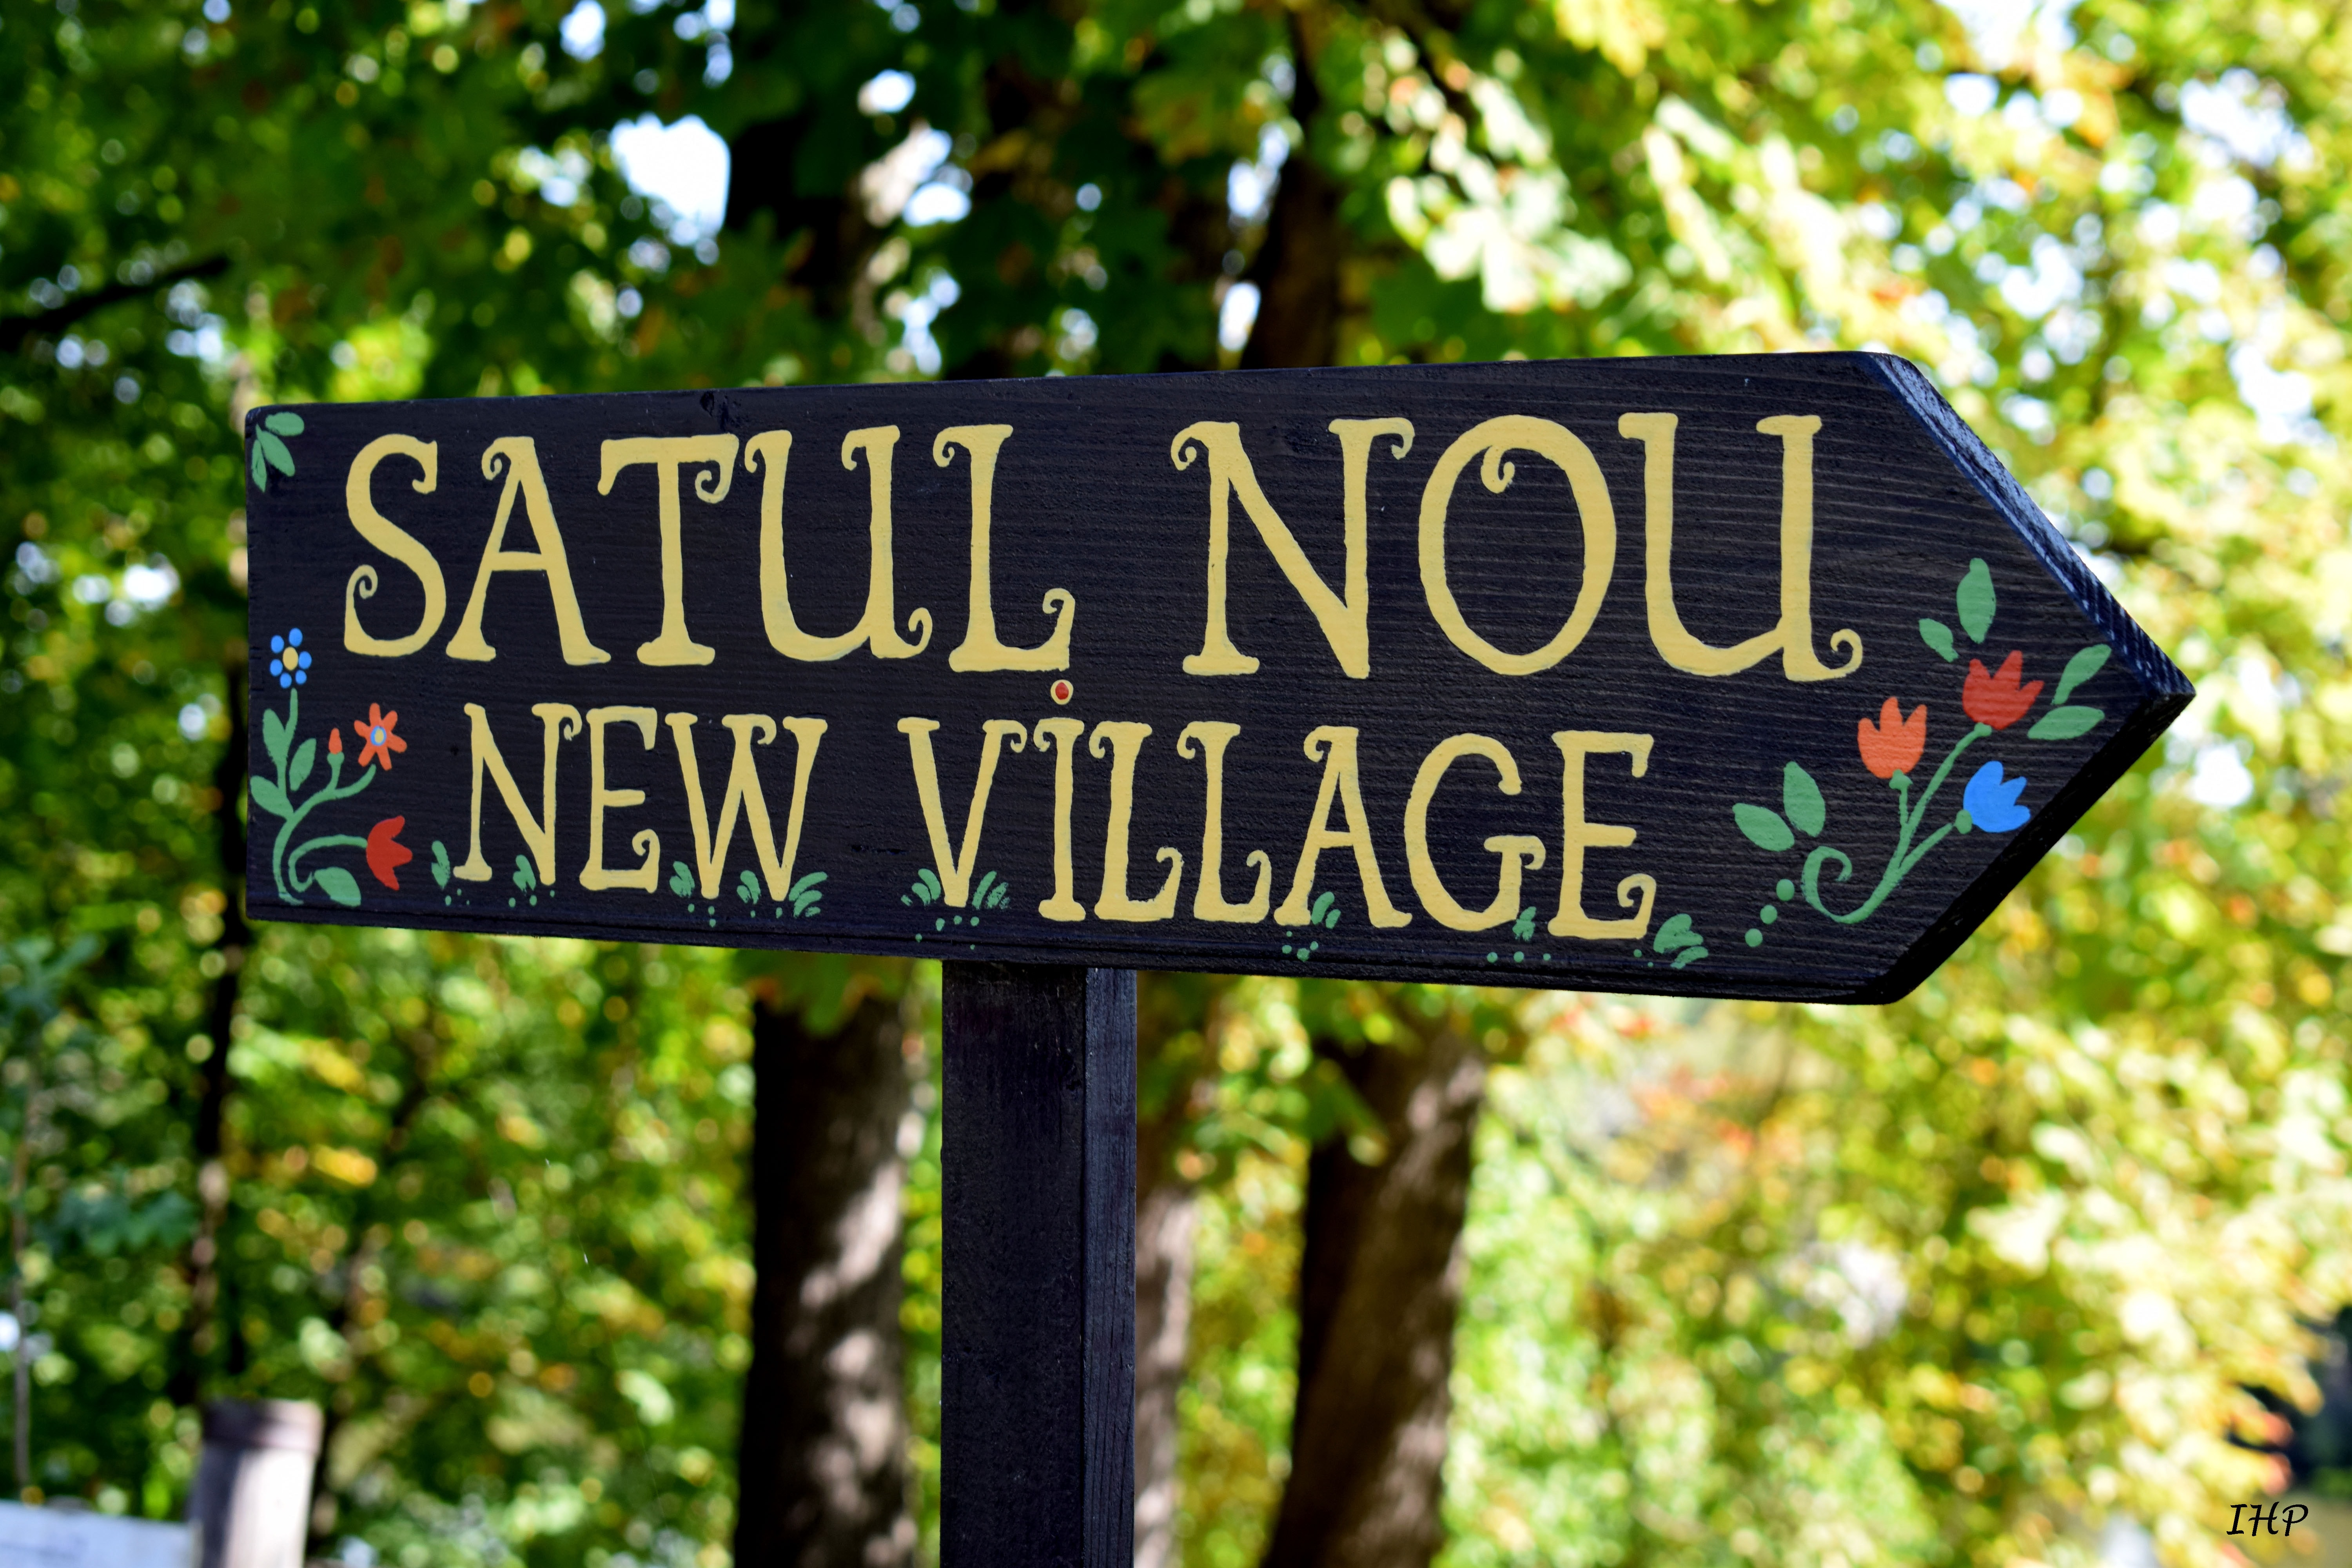 Satul Nou New Village signage under green trees